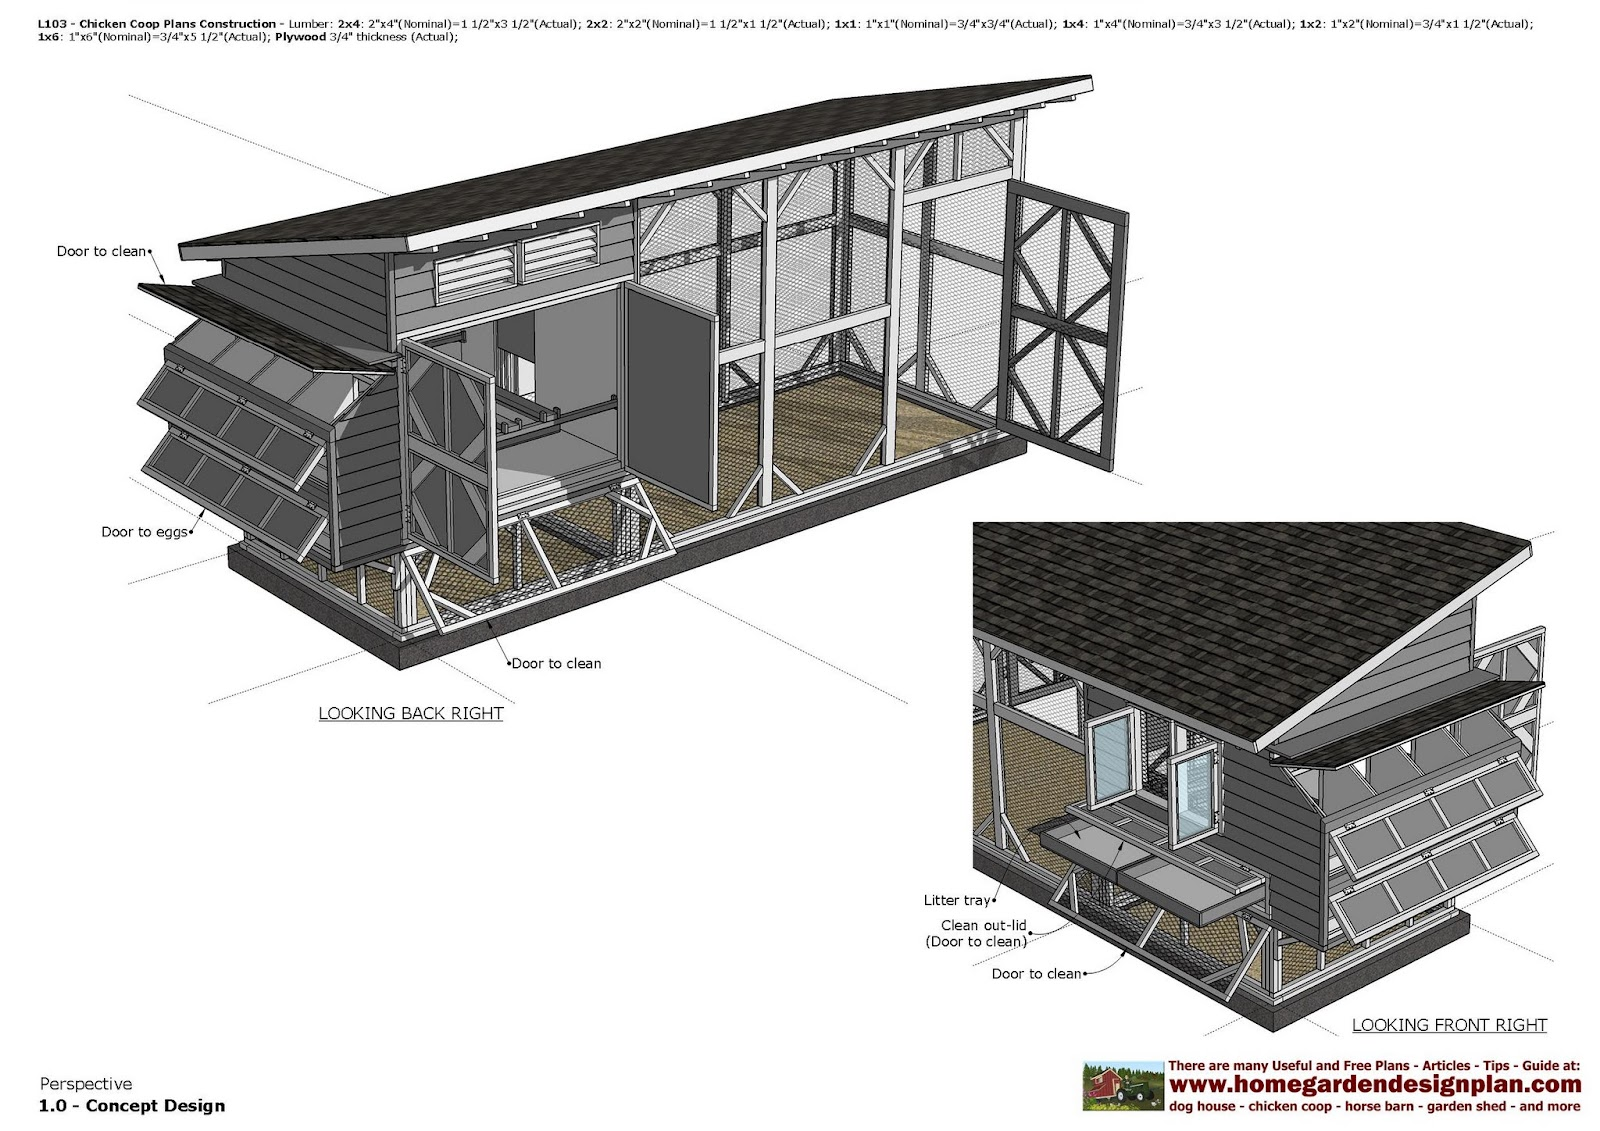 Home Garden Plans L103 Chicken Coop Plans Chicken